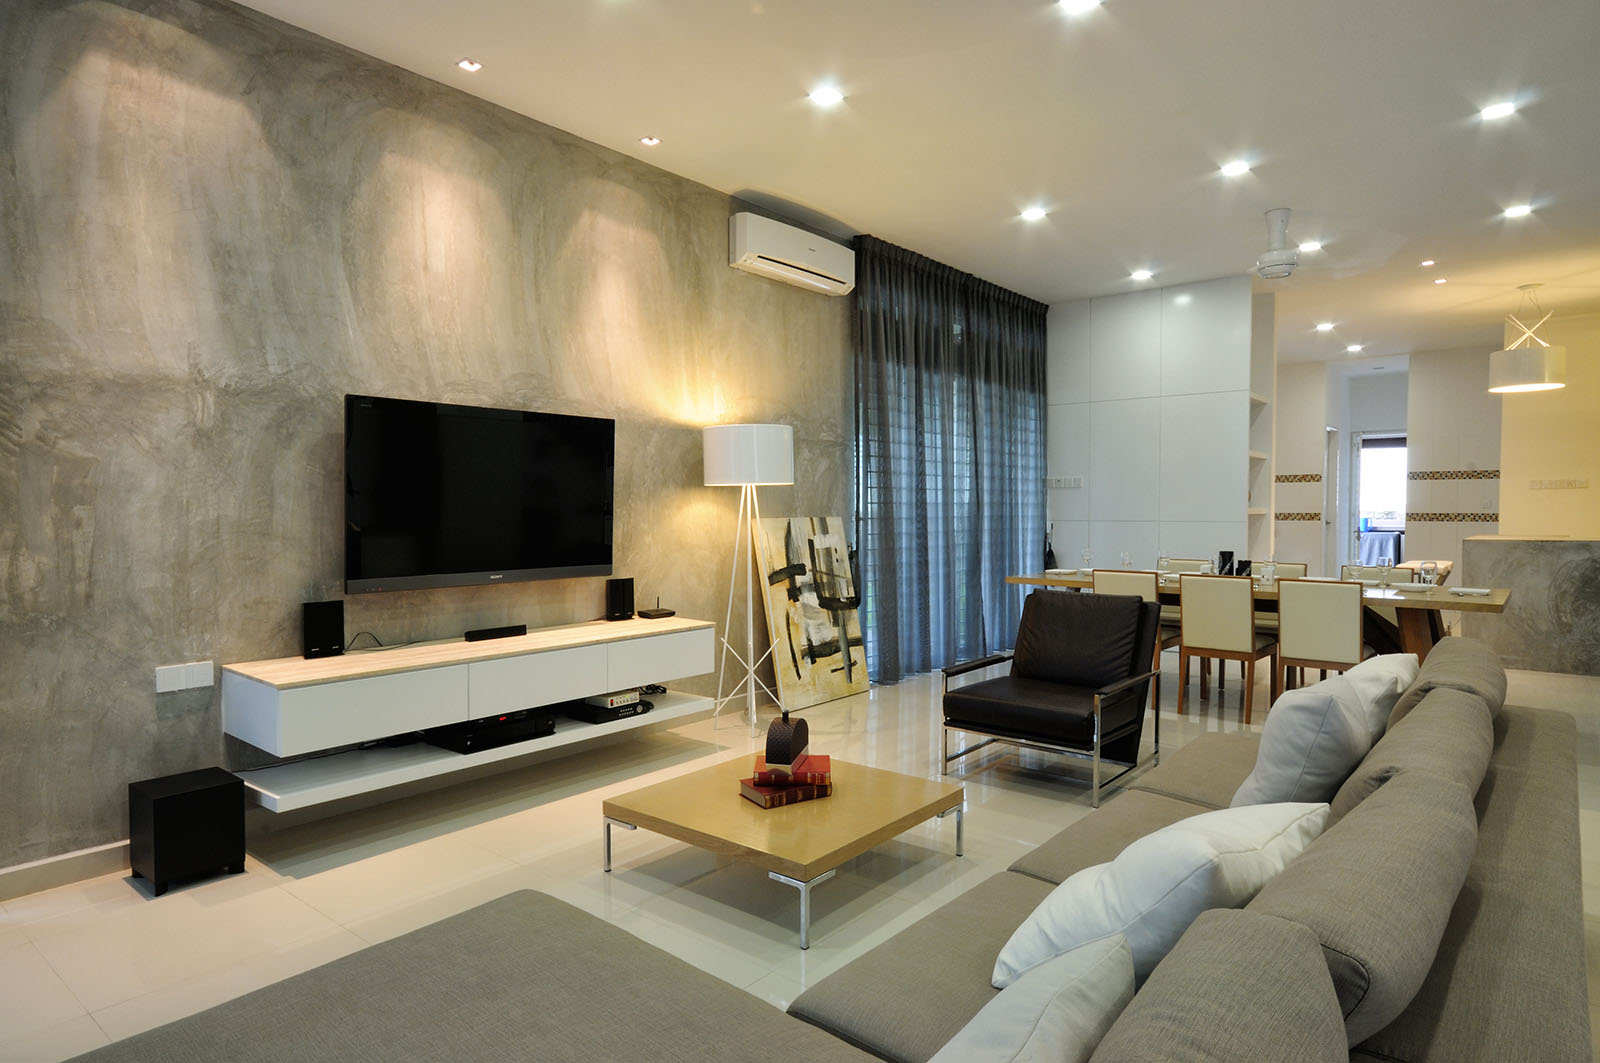 Penang Interior Design 01.jpg